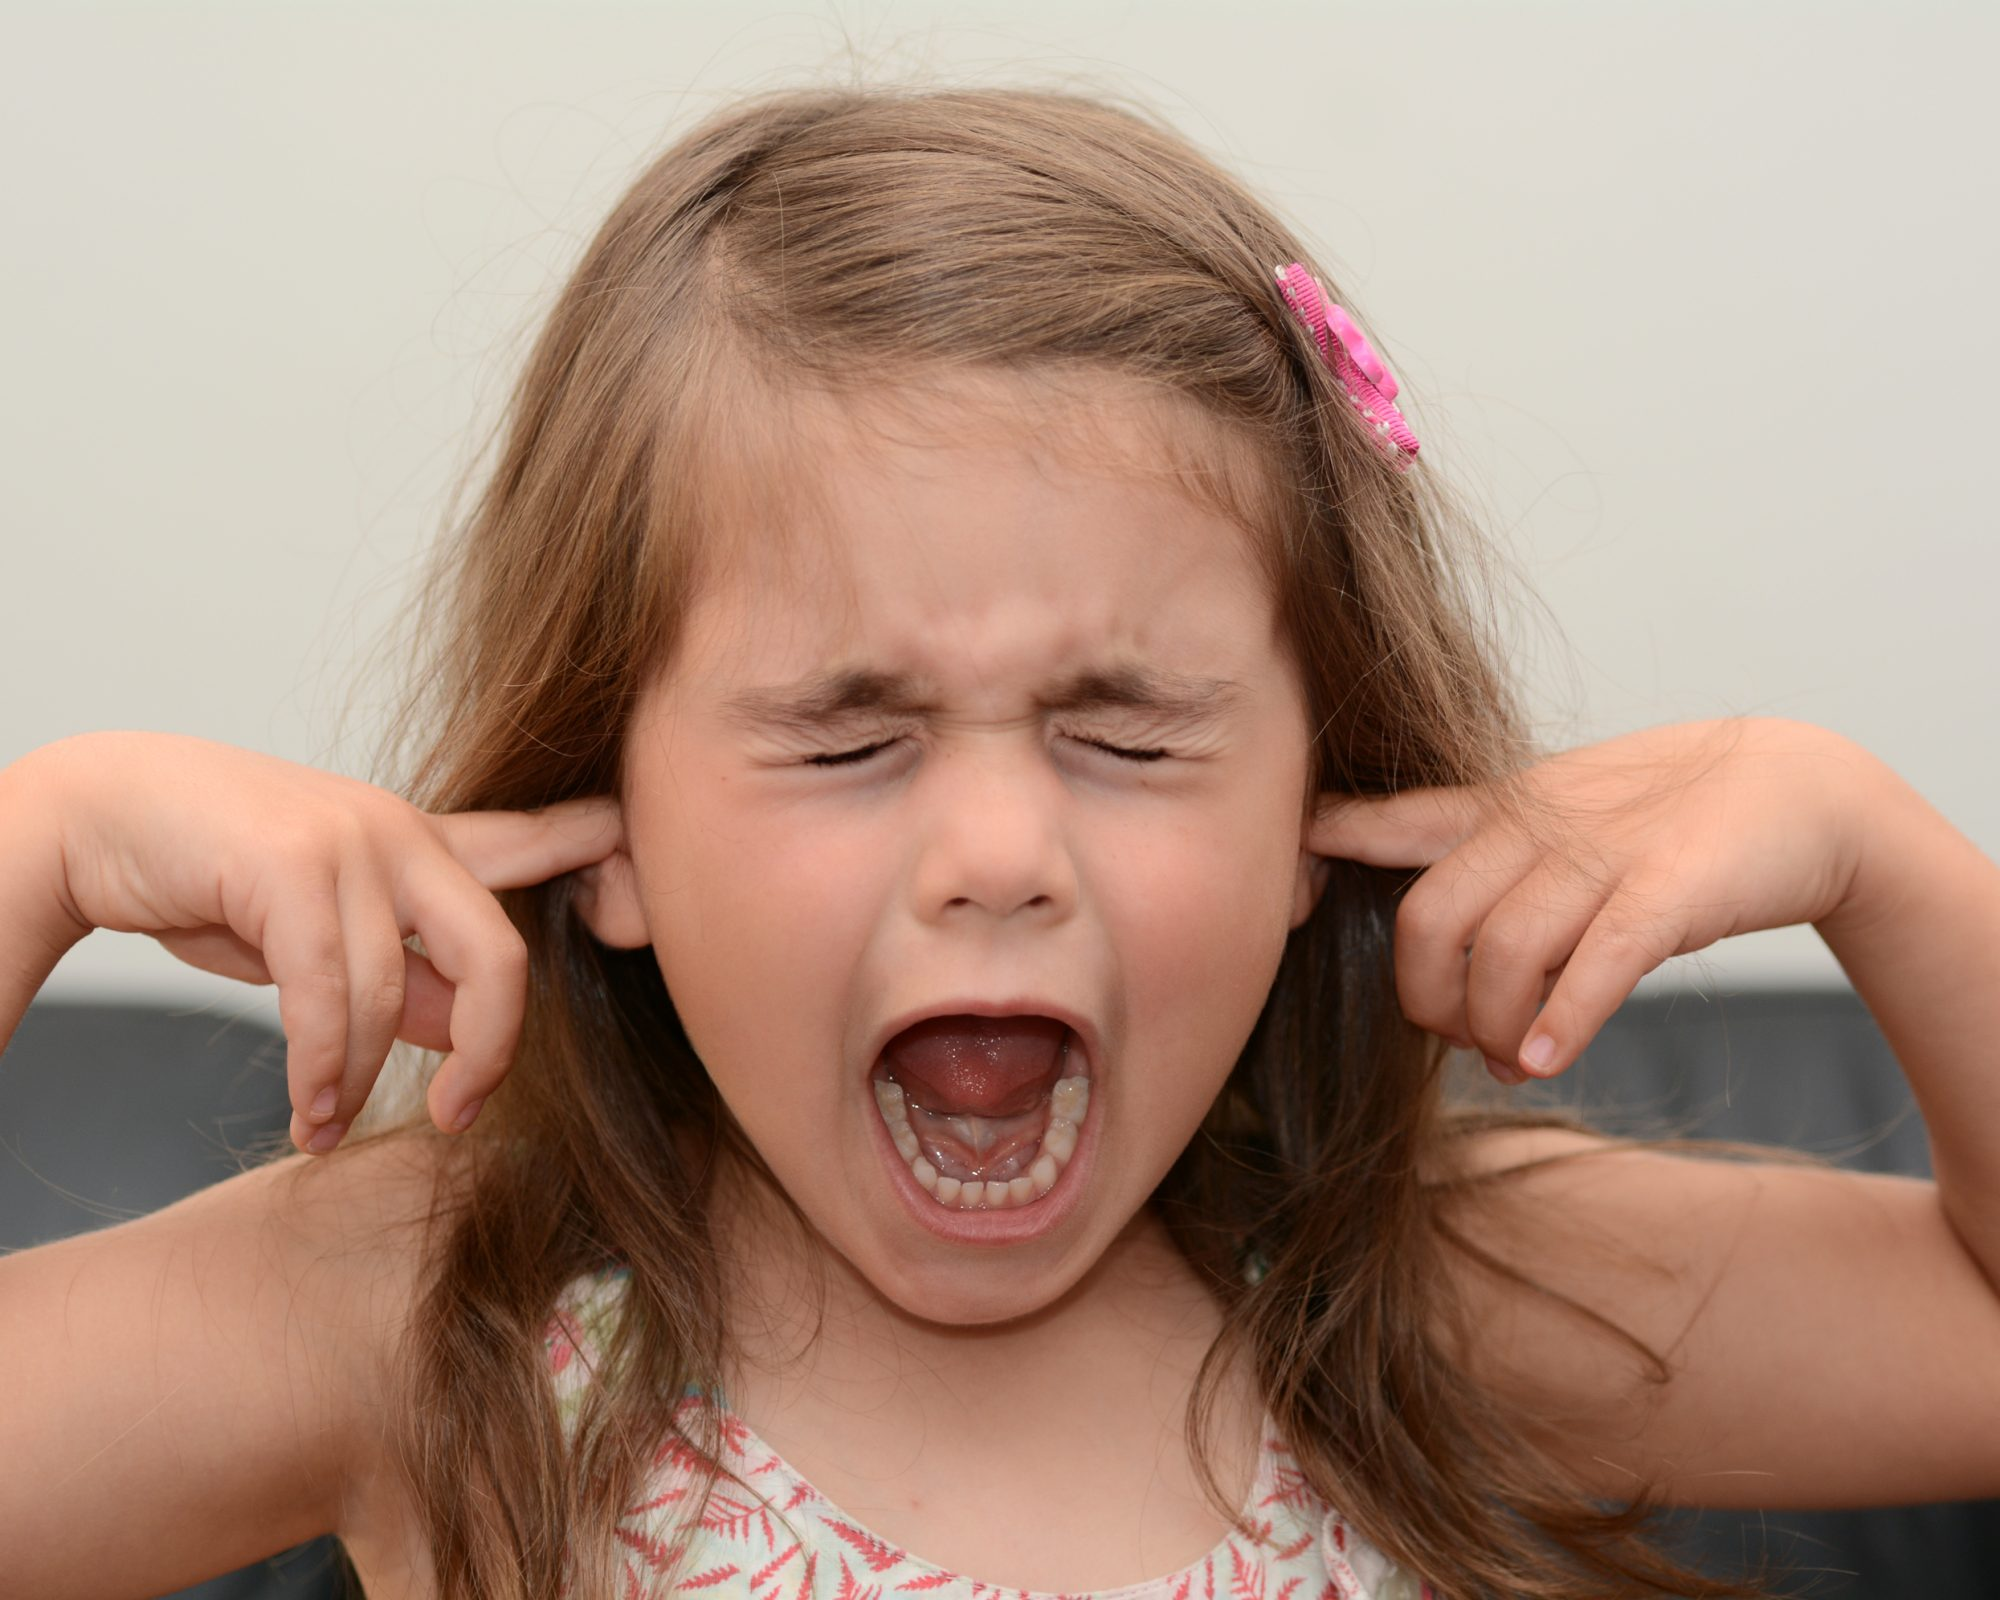 Screaming child (girl age 05) face. concept photo of stress and anxiety.